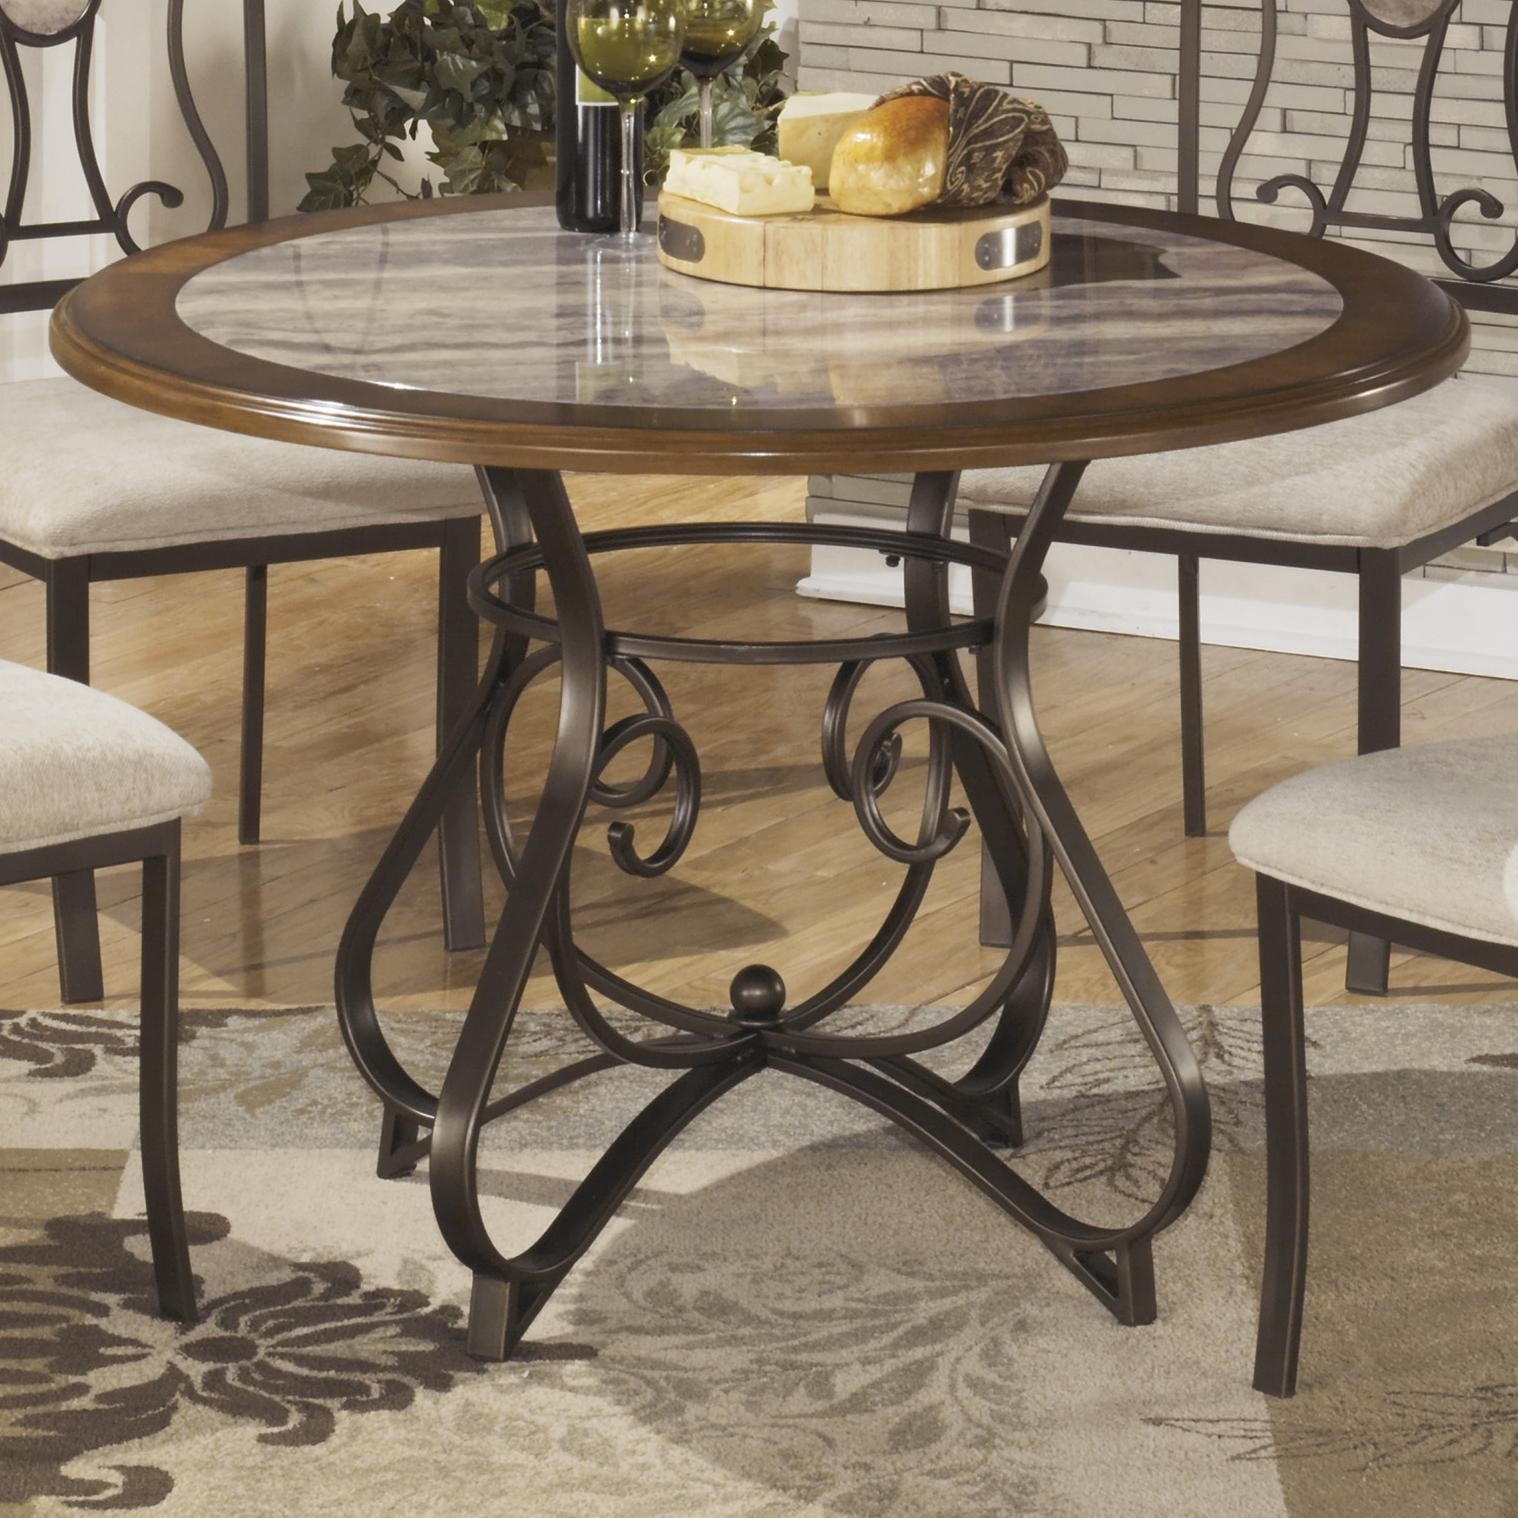 Signature Design by Ashley Hopstand Round Dining Room Table - Item Number: D314-15B+T